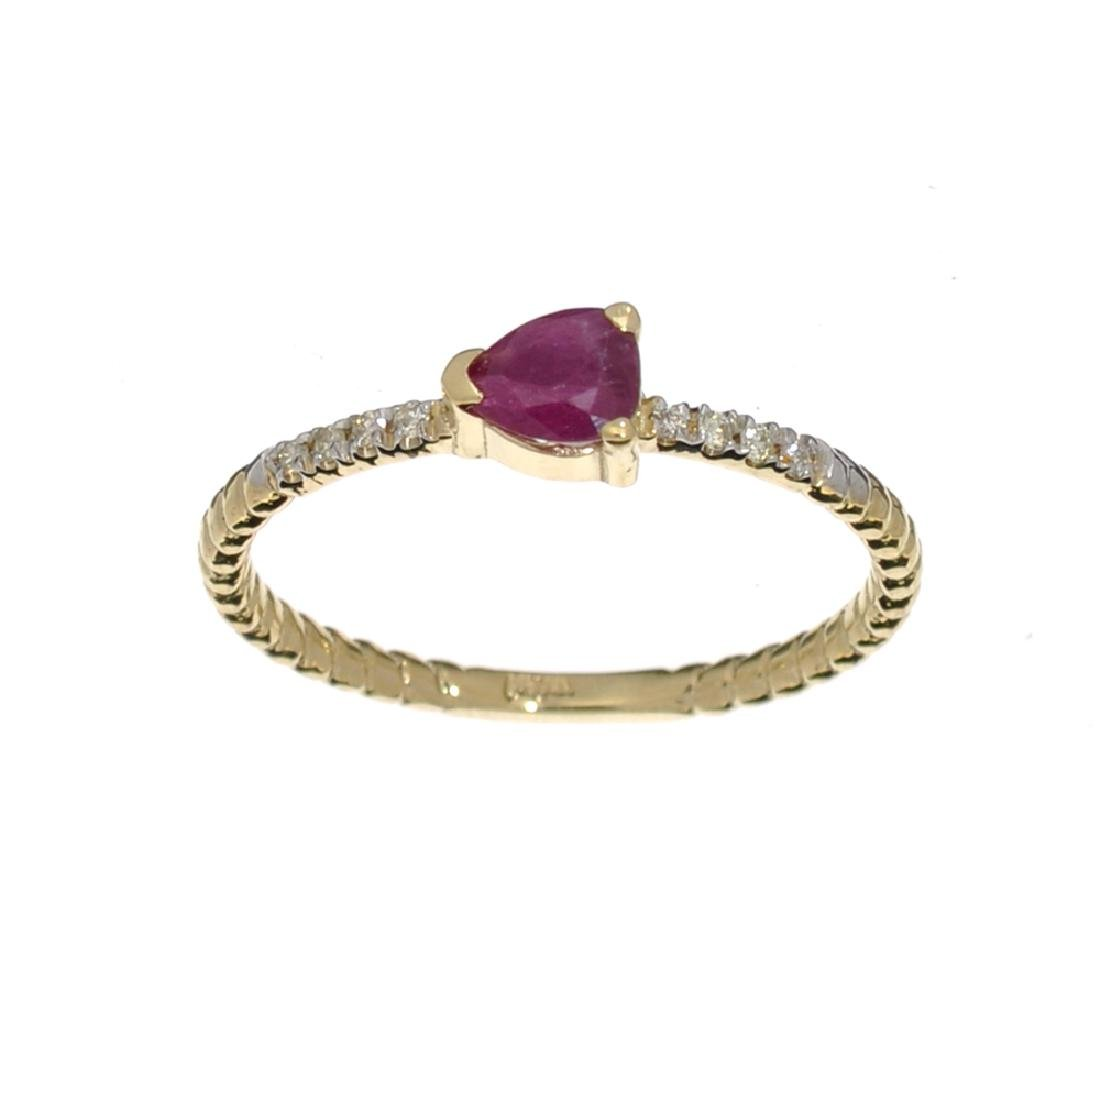 APP: 0.7k Fine Jewelry 14KT Gold, 0.37CT Ruby And